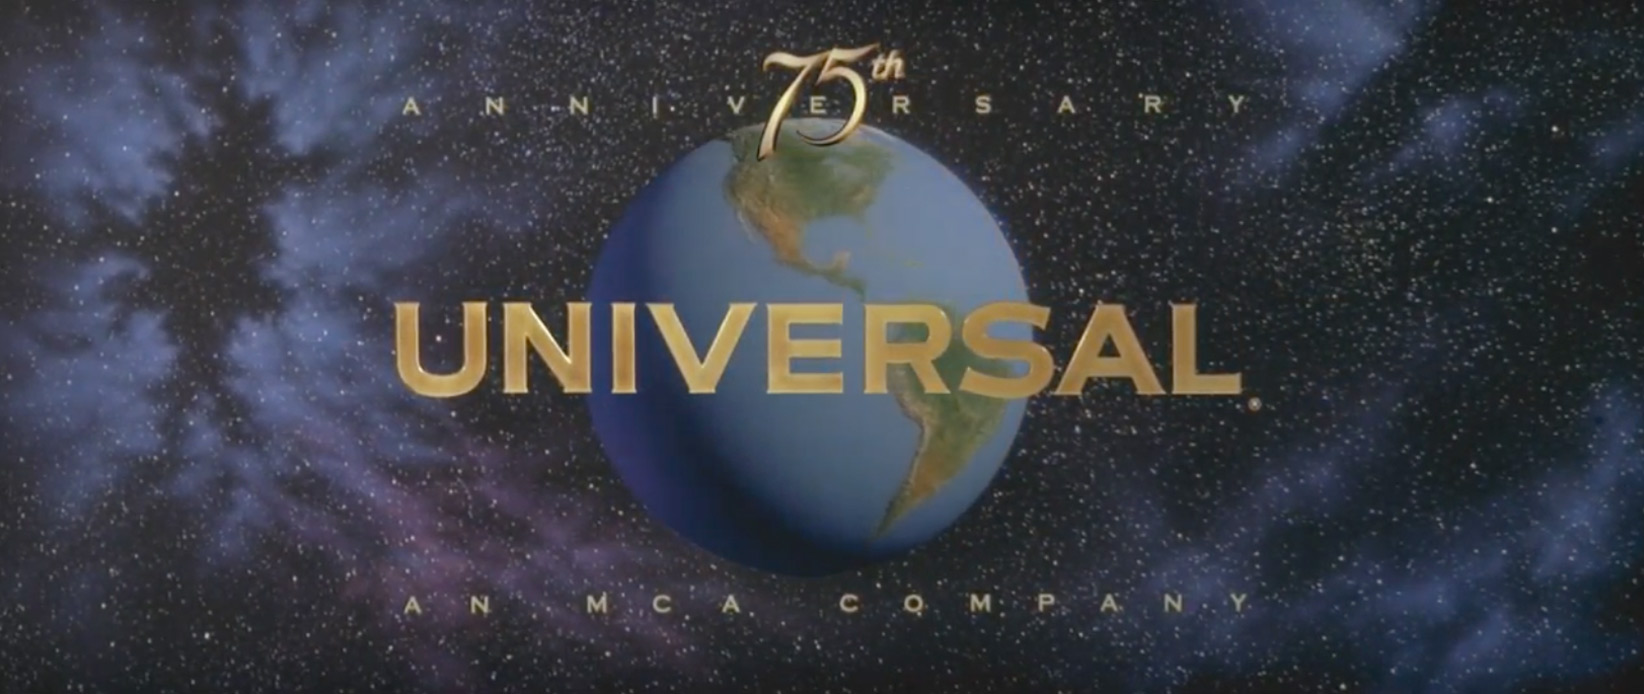 universal pictures about the film studio